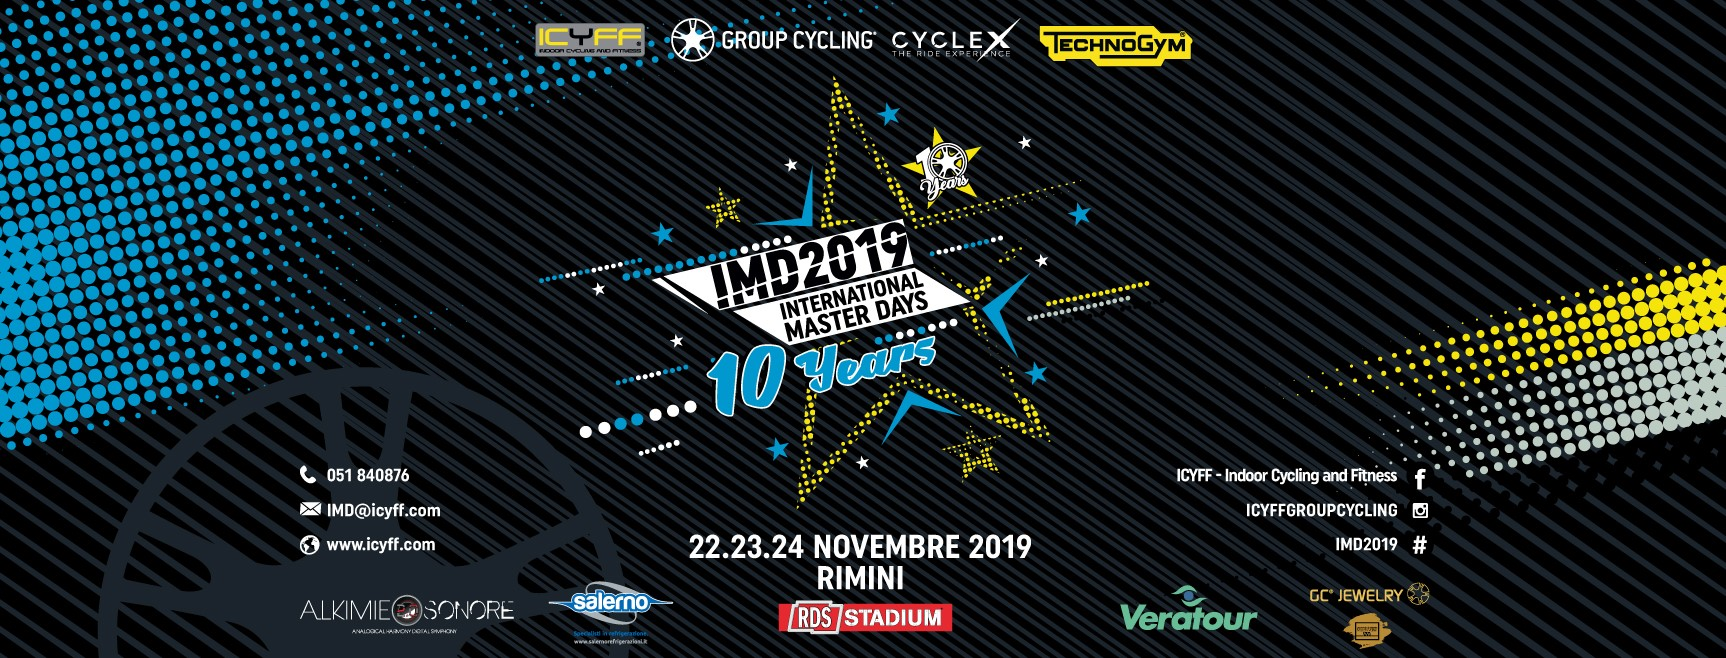 INTERNATIONAL MASTER DAYS DI SPINNING - RIMINI 2019